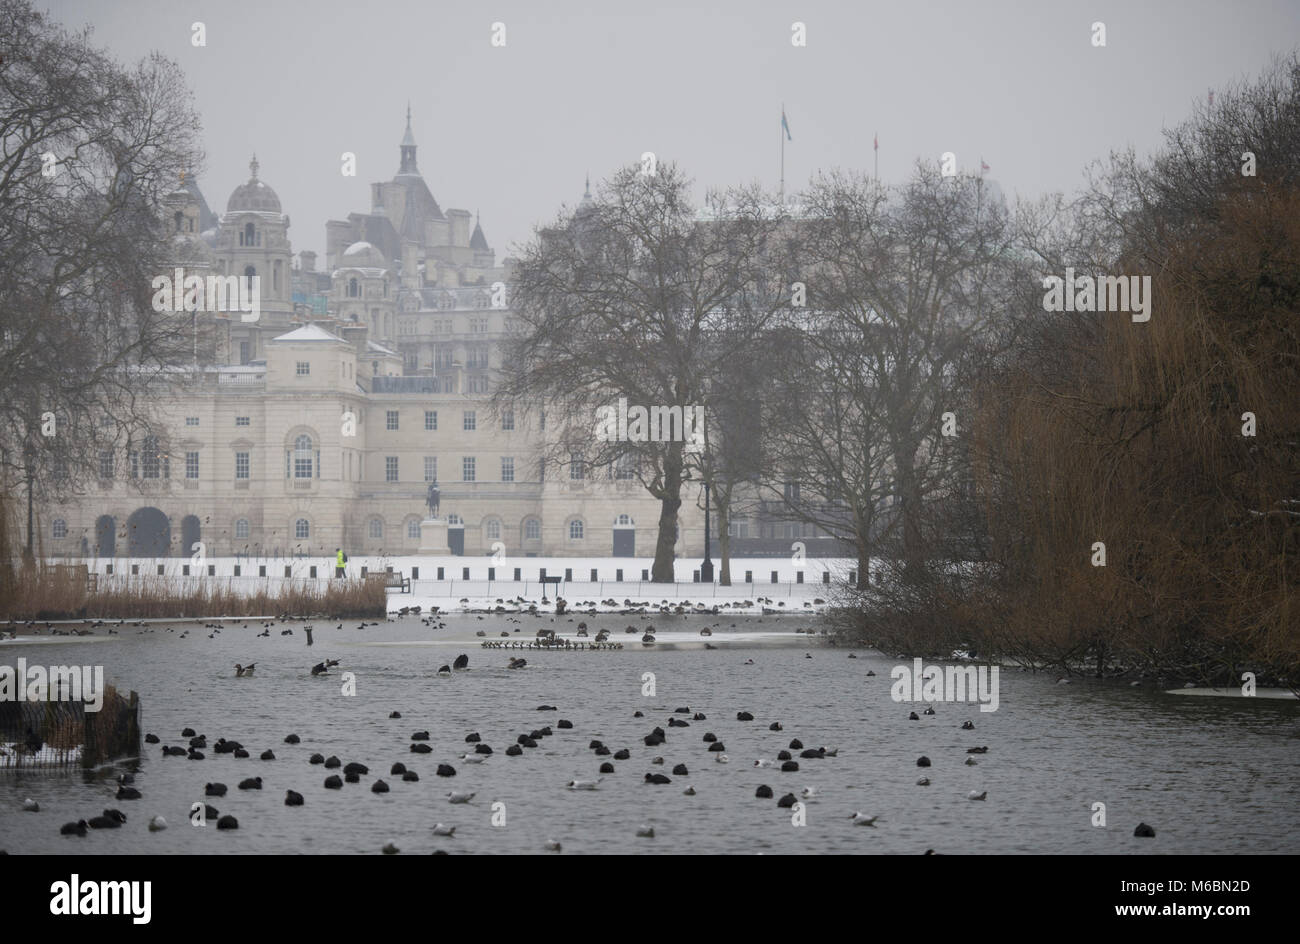 1 March 2018. St James's Park Lake, Westminster, in freezing conditions after overnight snowfall, London, UK. - Stock Image